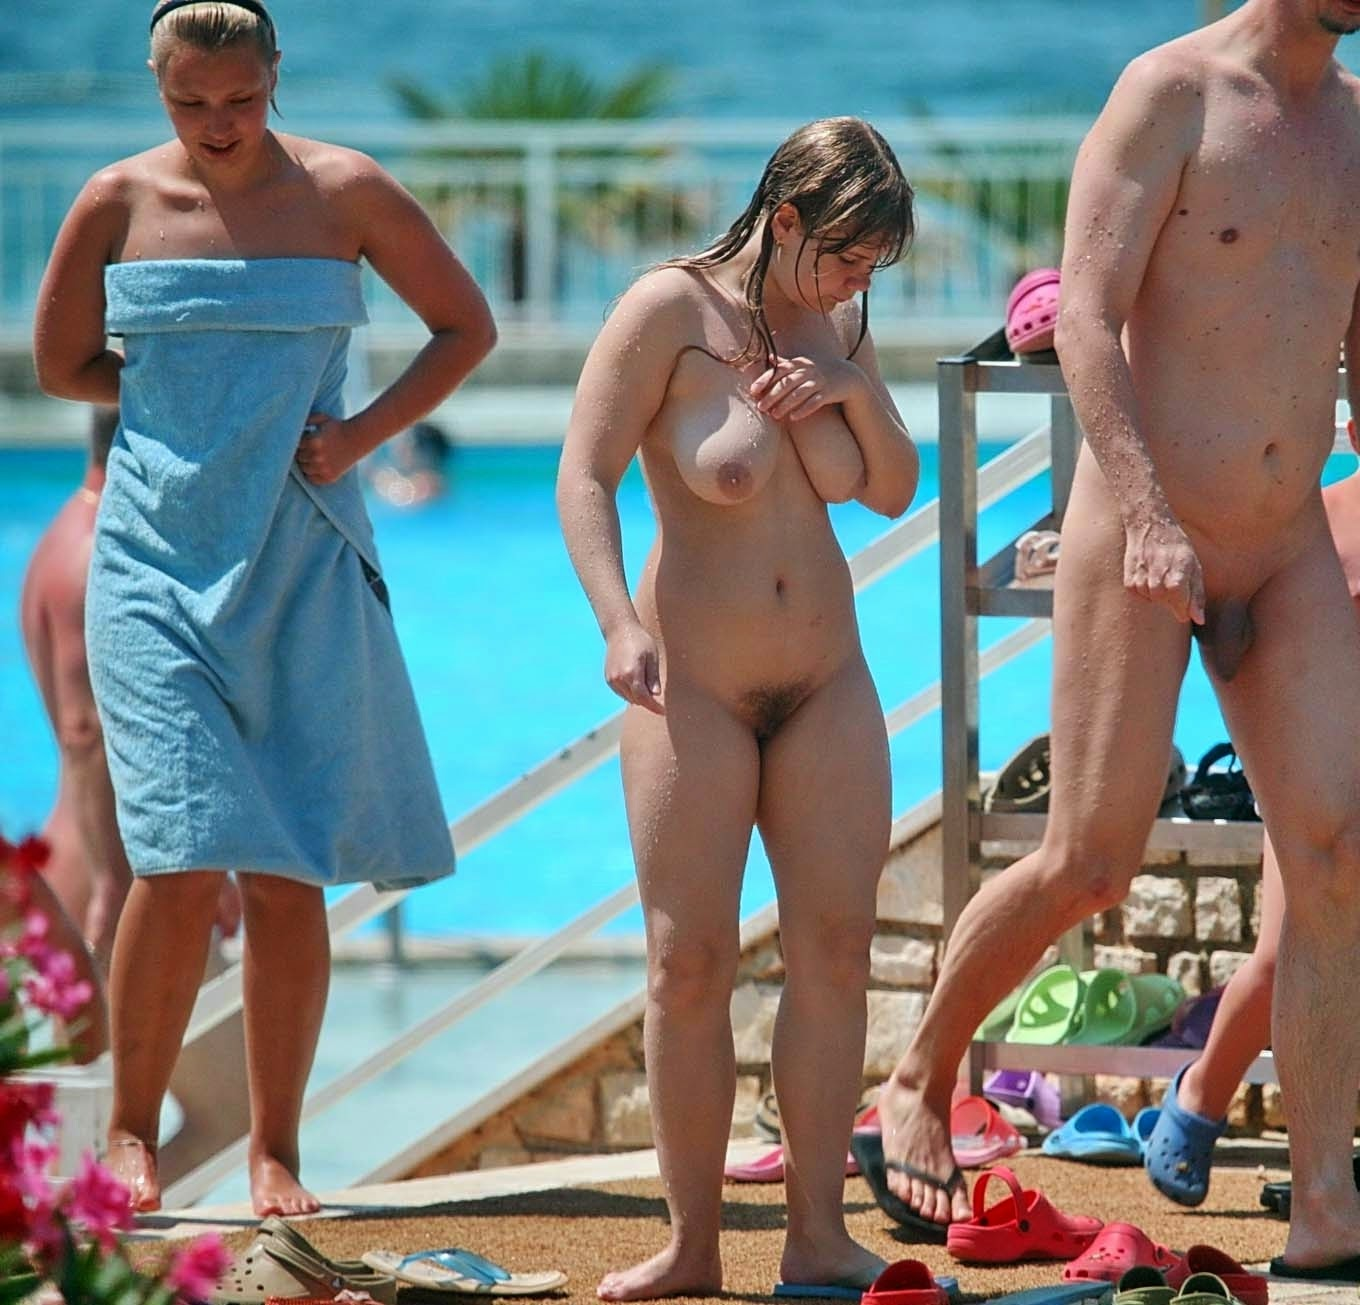 Labour. Without Nudist camp nude